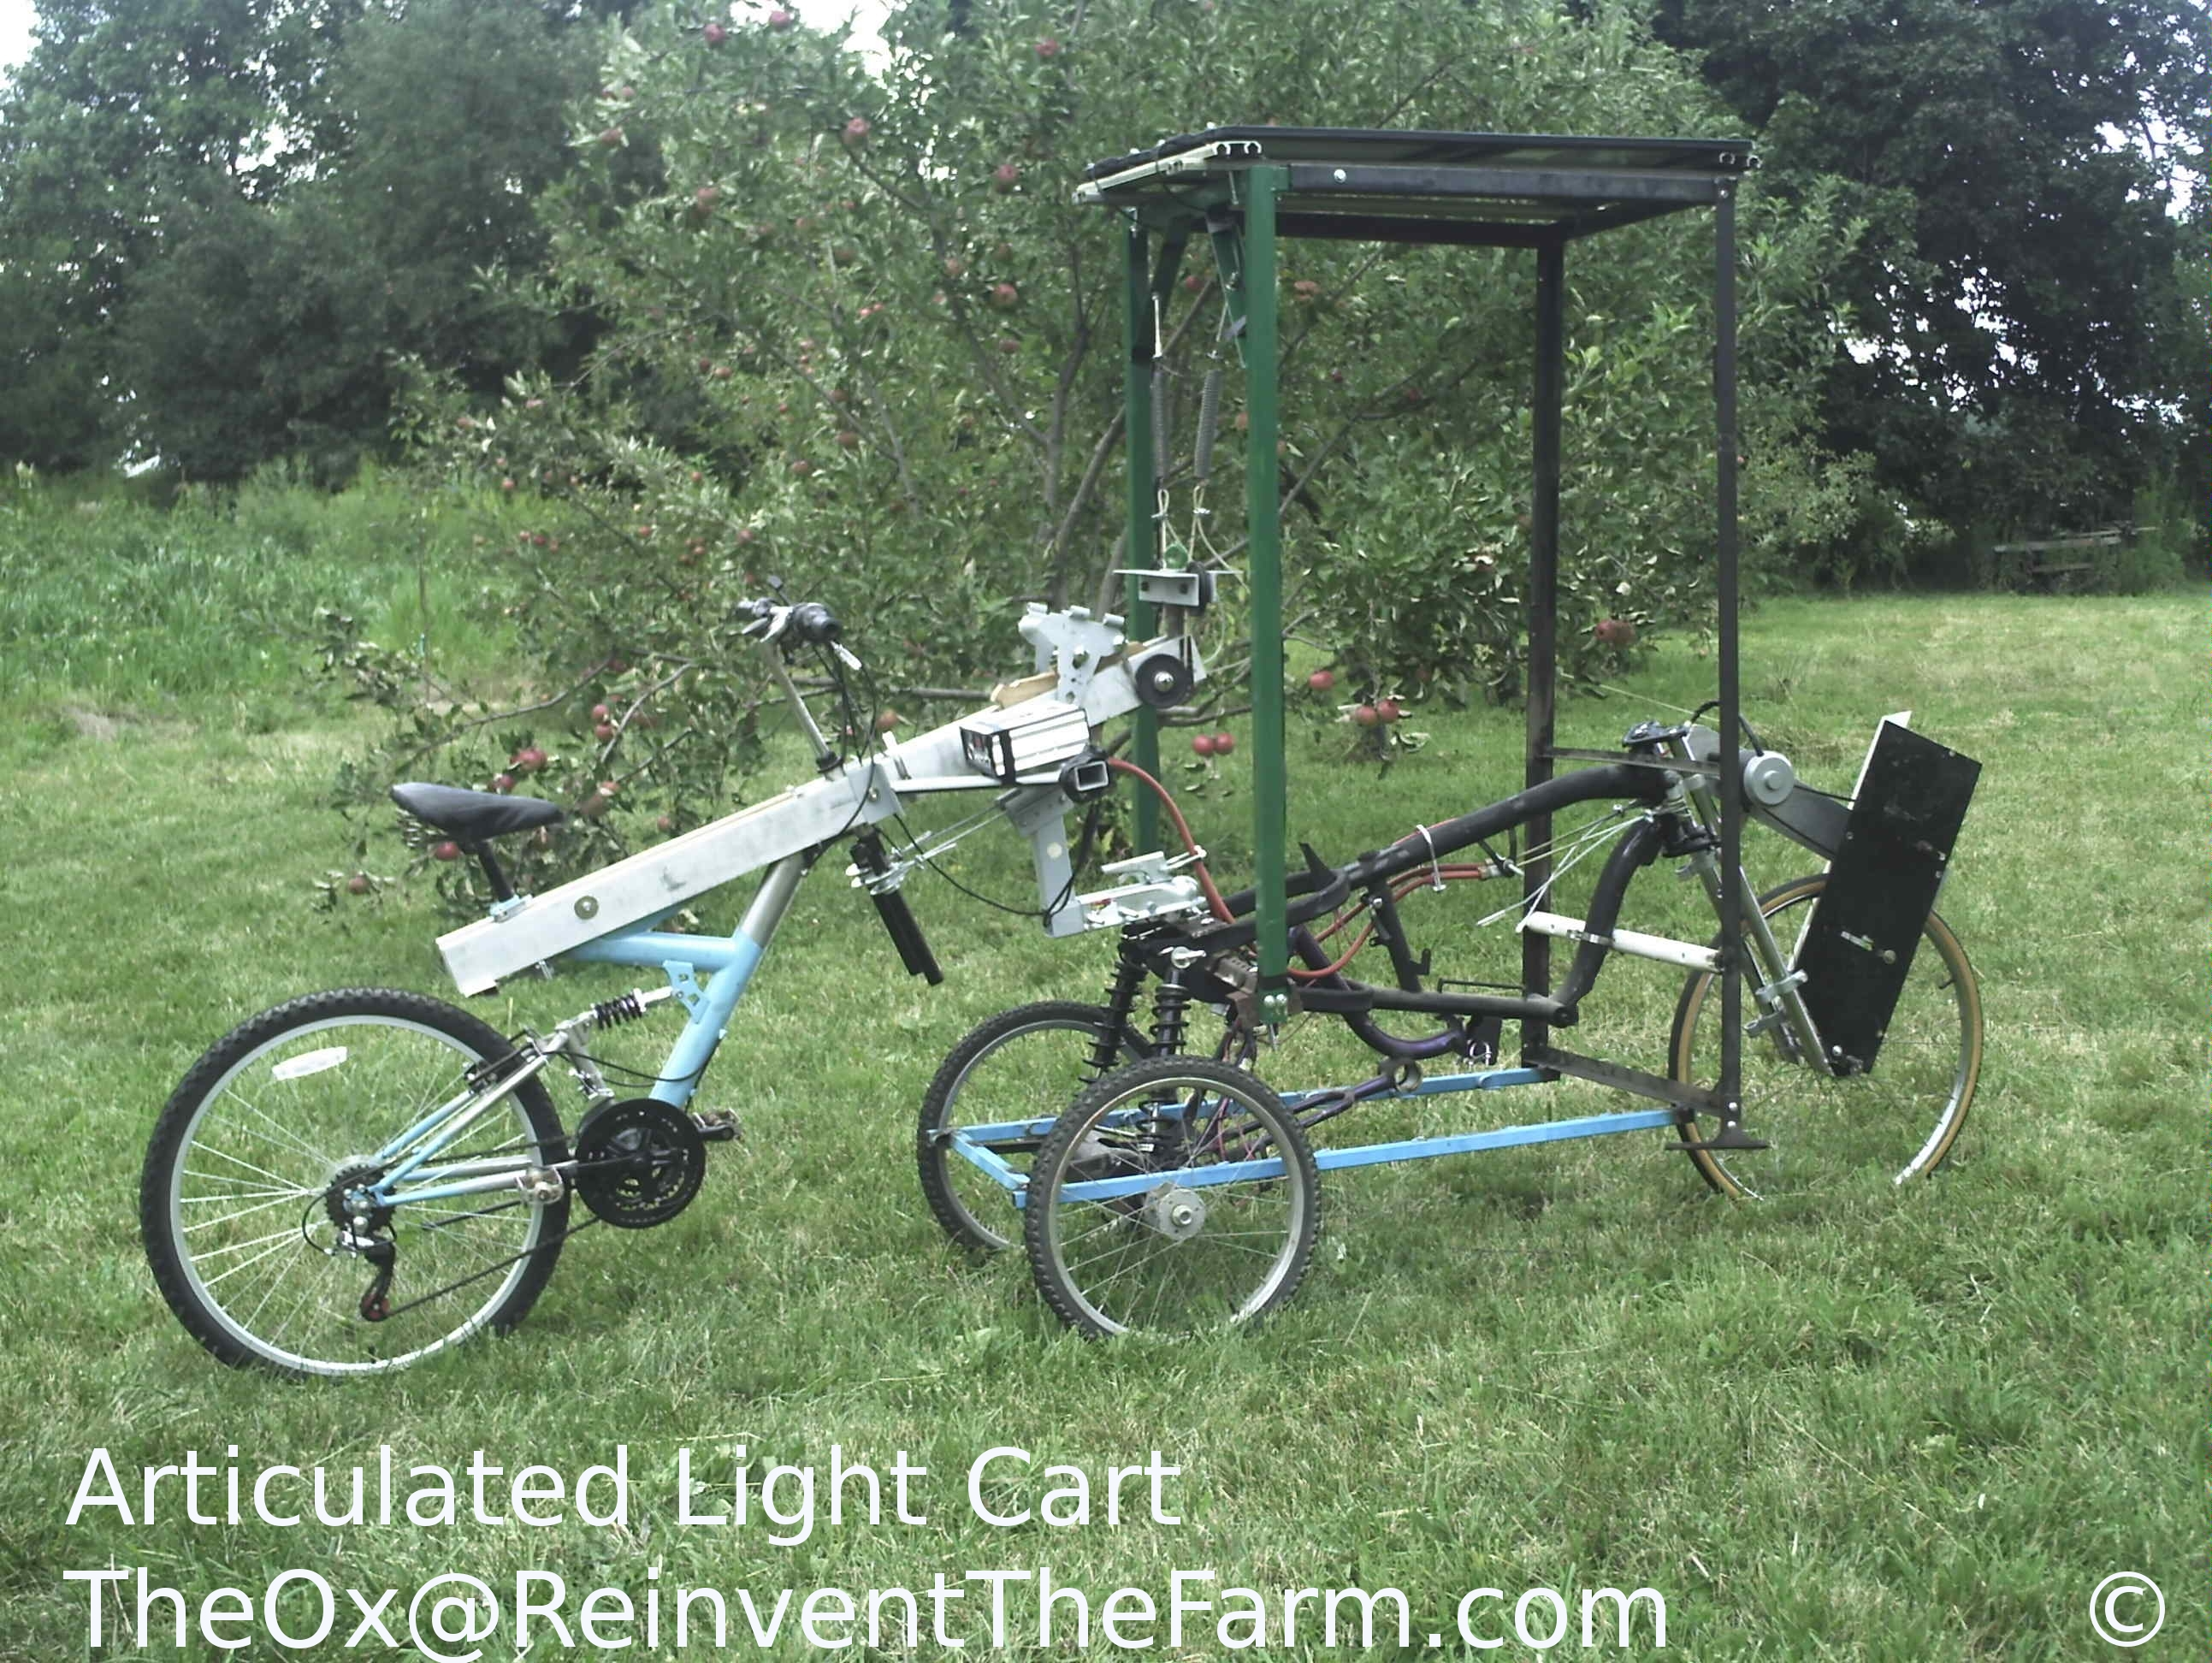 Prototype Articulated Light Cart Hybrid vehicle